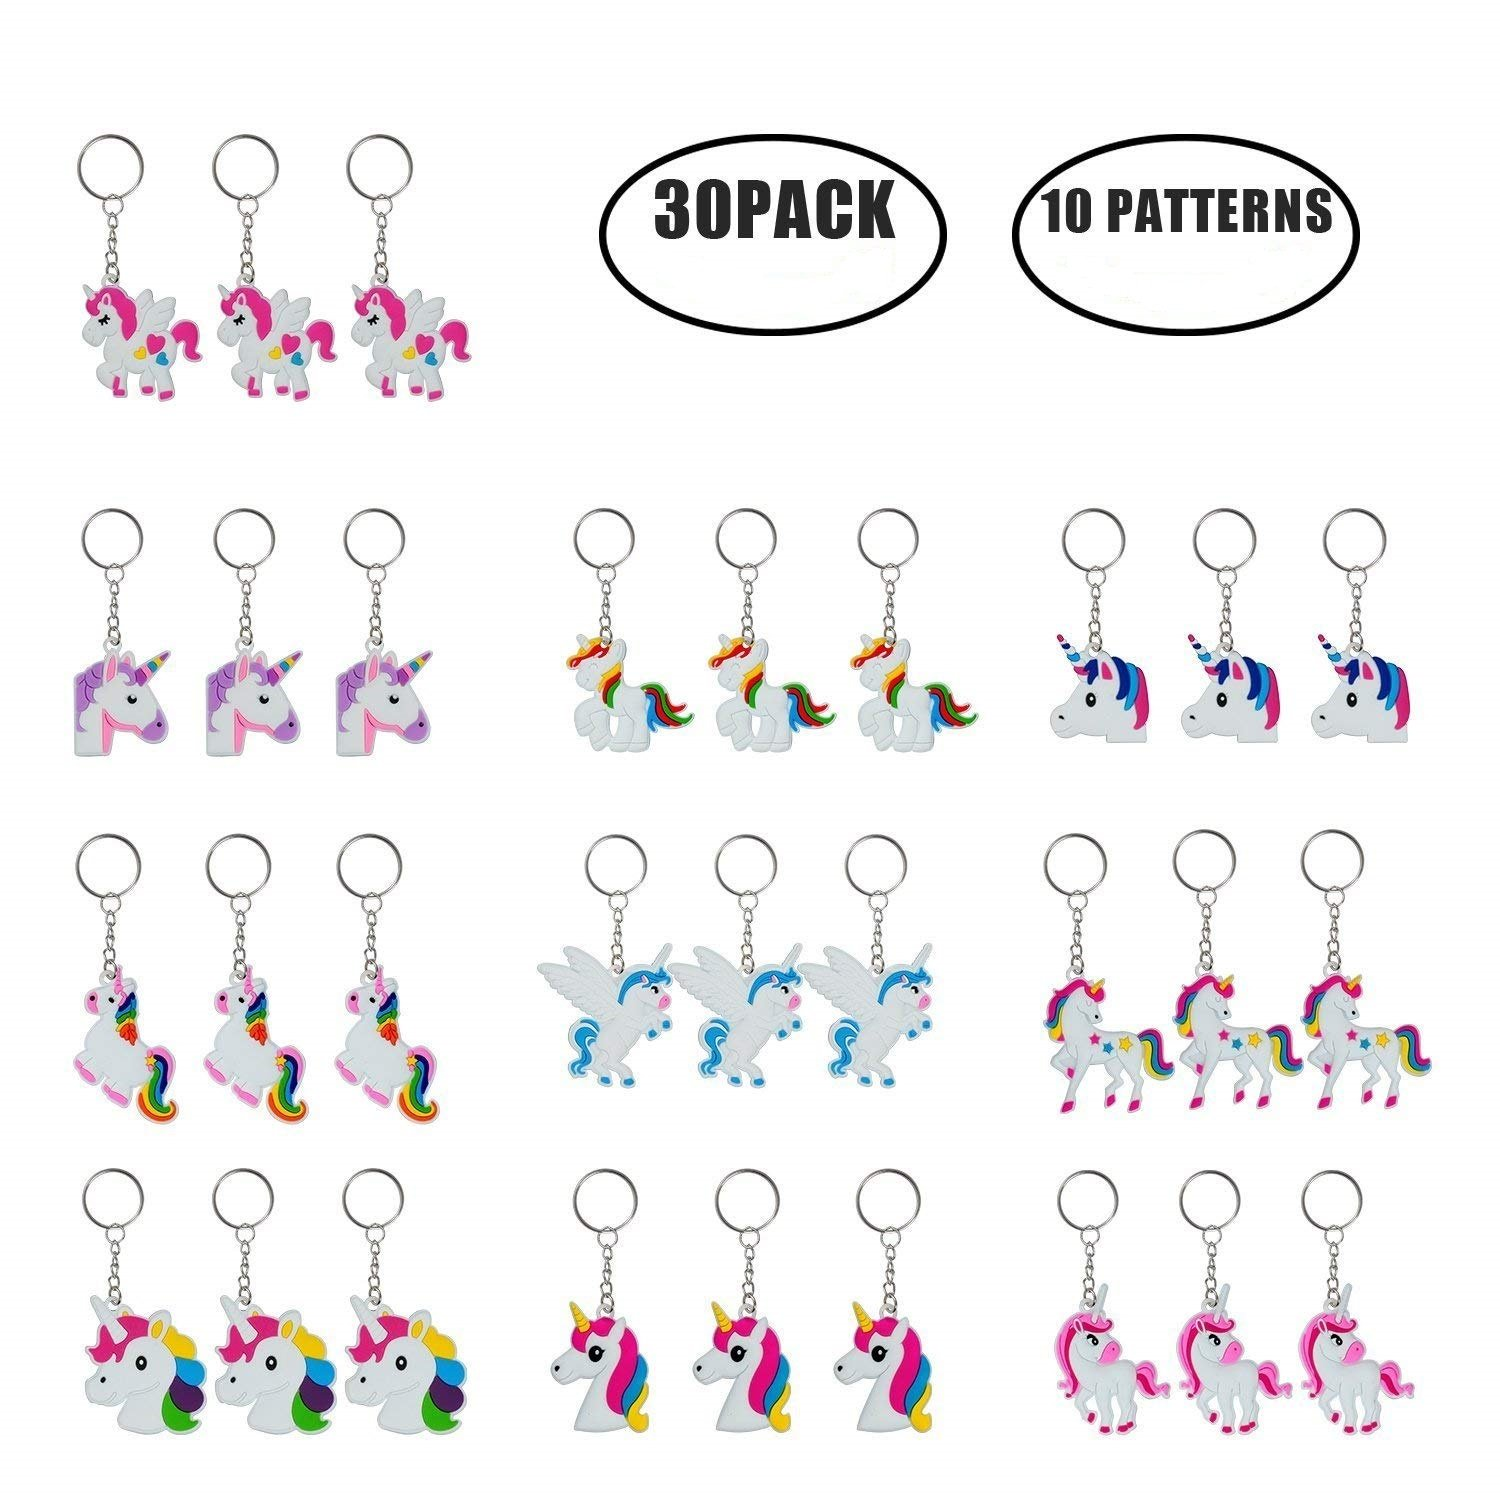 M-Aimee 30 Pack Rainbow Unicorn Keychain for Birthday Party Favor Supplies Decoration Gifts for Kids Unicorn-30